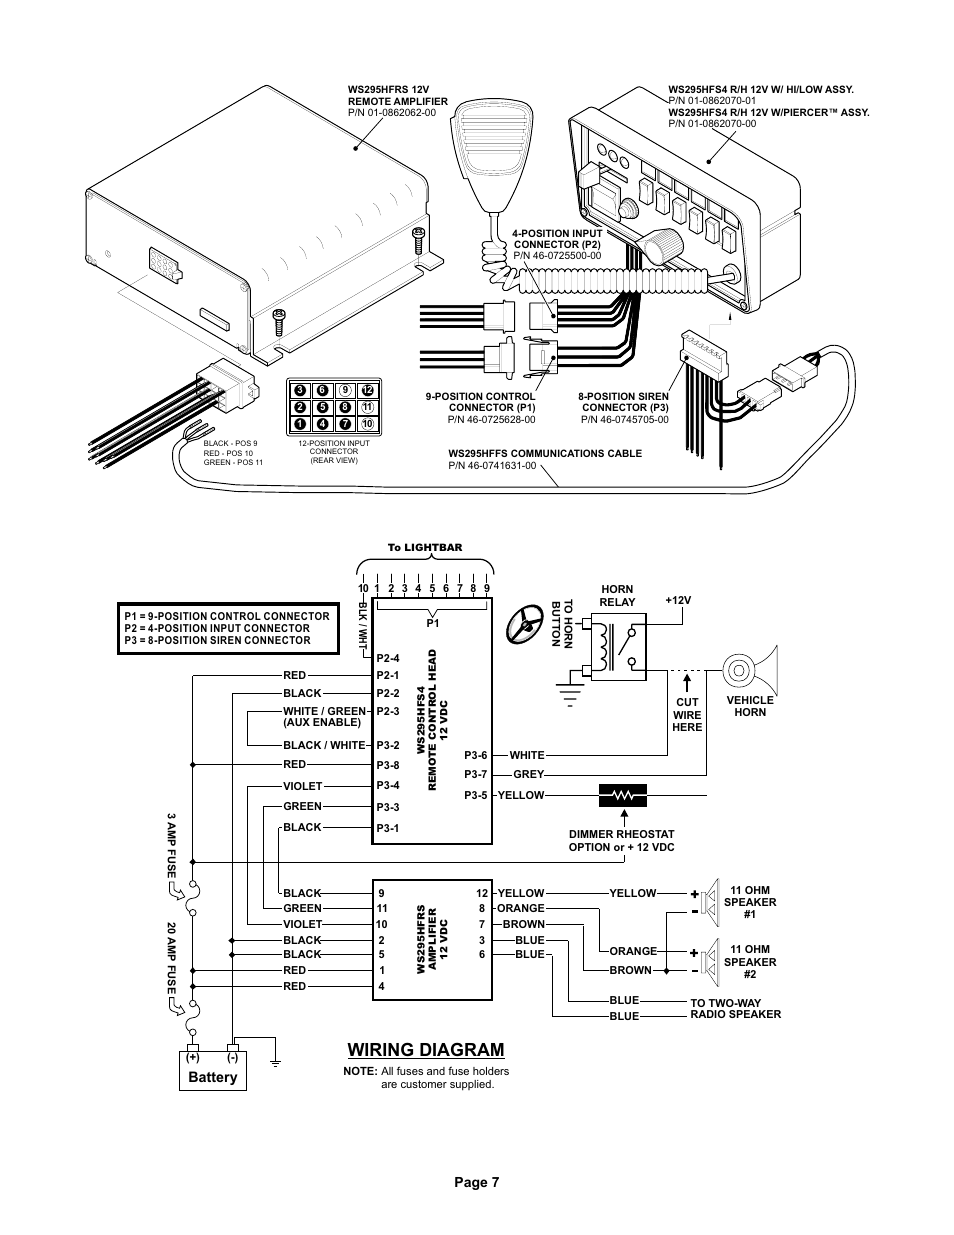 wiring diagram for whelen edge 9m for a new telephone wiring diagram for installation whelen 295hfsa5 wiring diagram | online wiring diagram